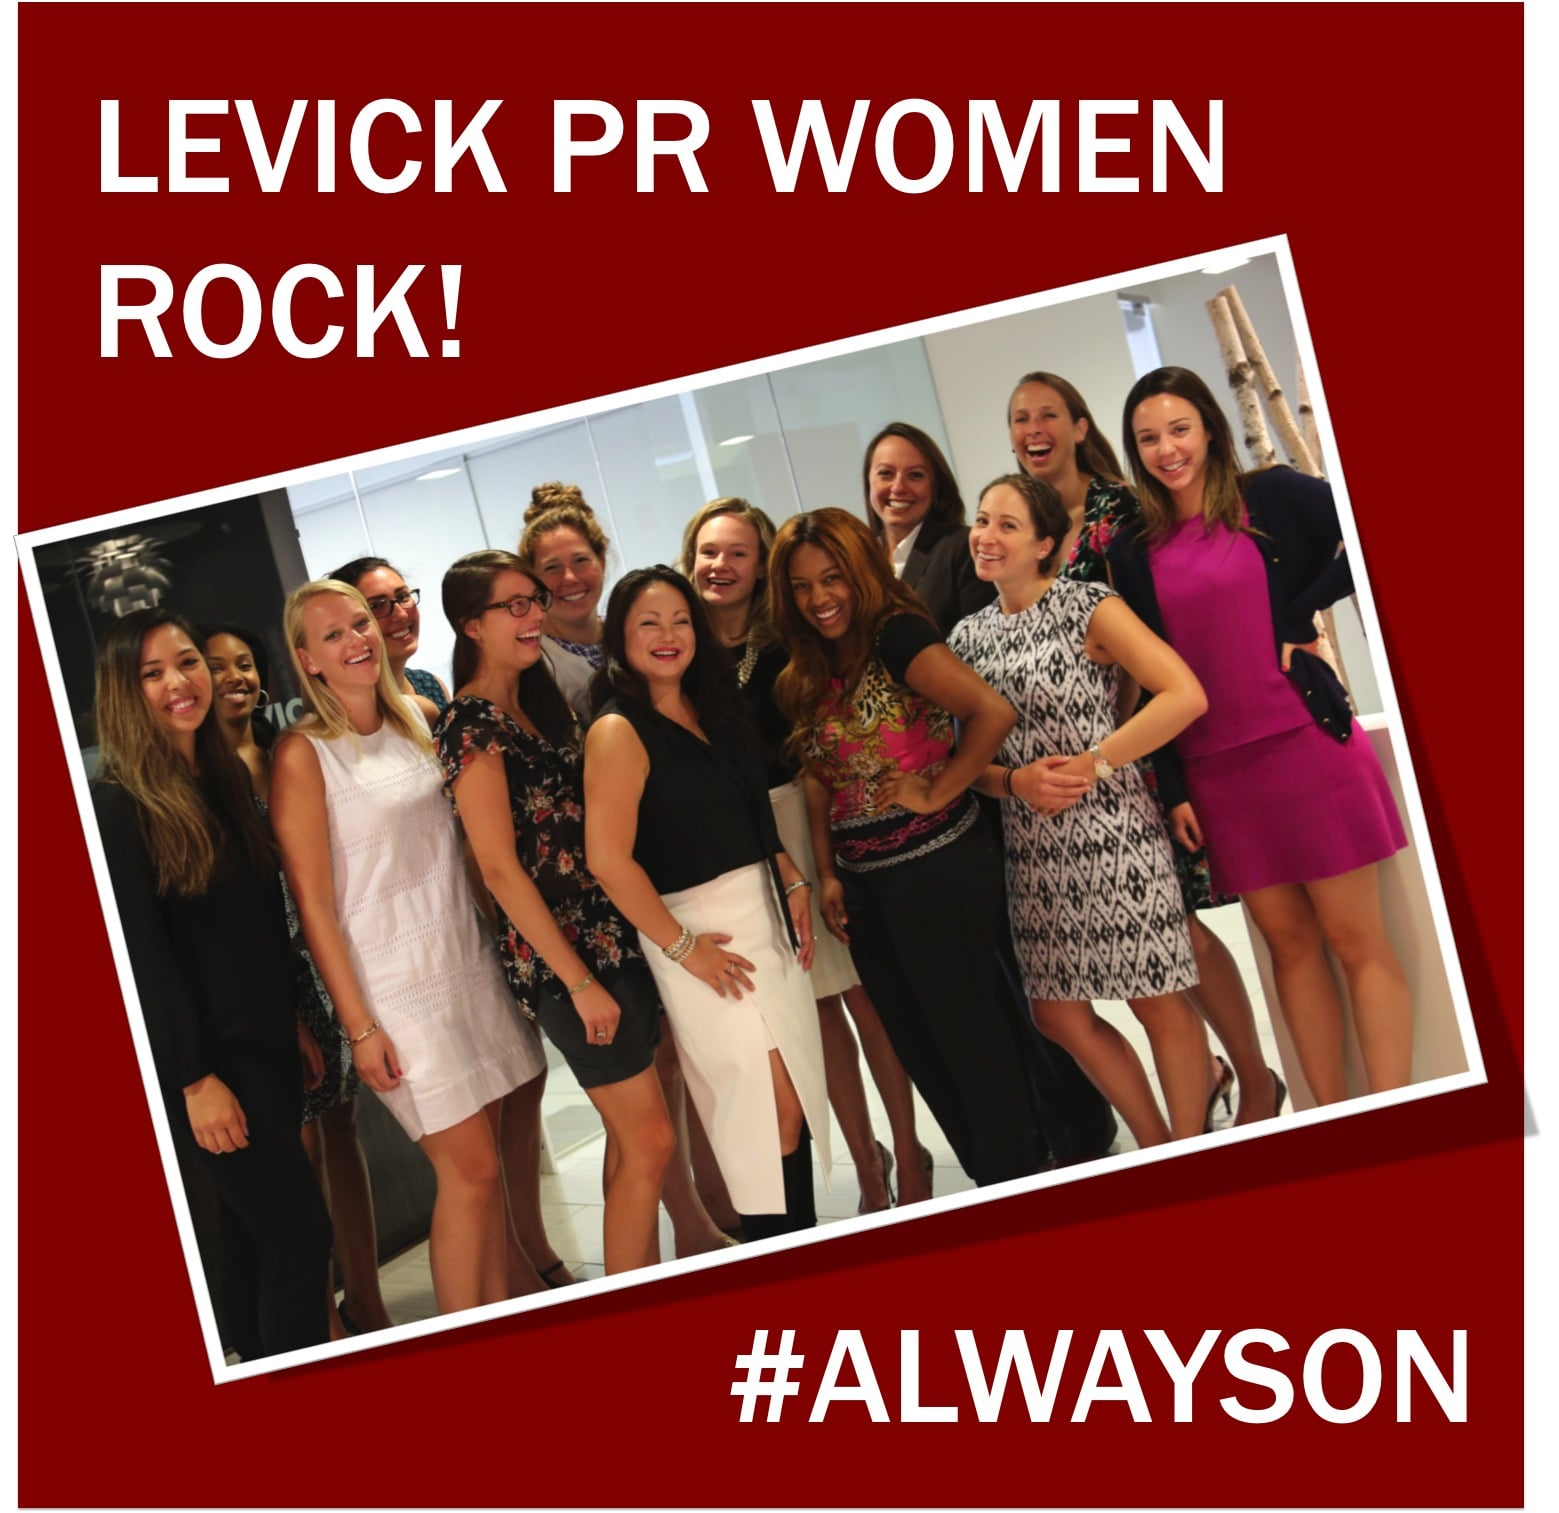 4PM: Women in public relations take charge! A shout out for all the amazing women that work at LEVICK (of which only a few are pictured…the other are on the job!) ~@szoldak #ALWAYSON